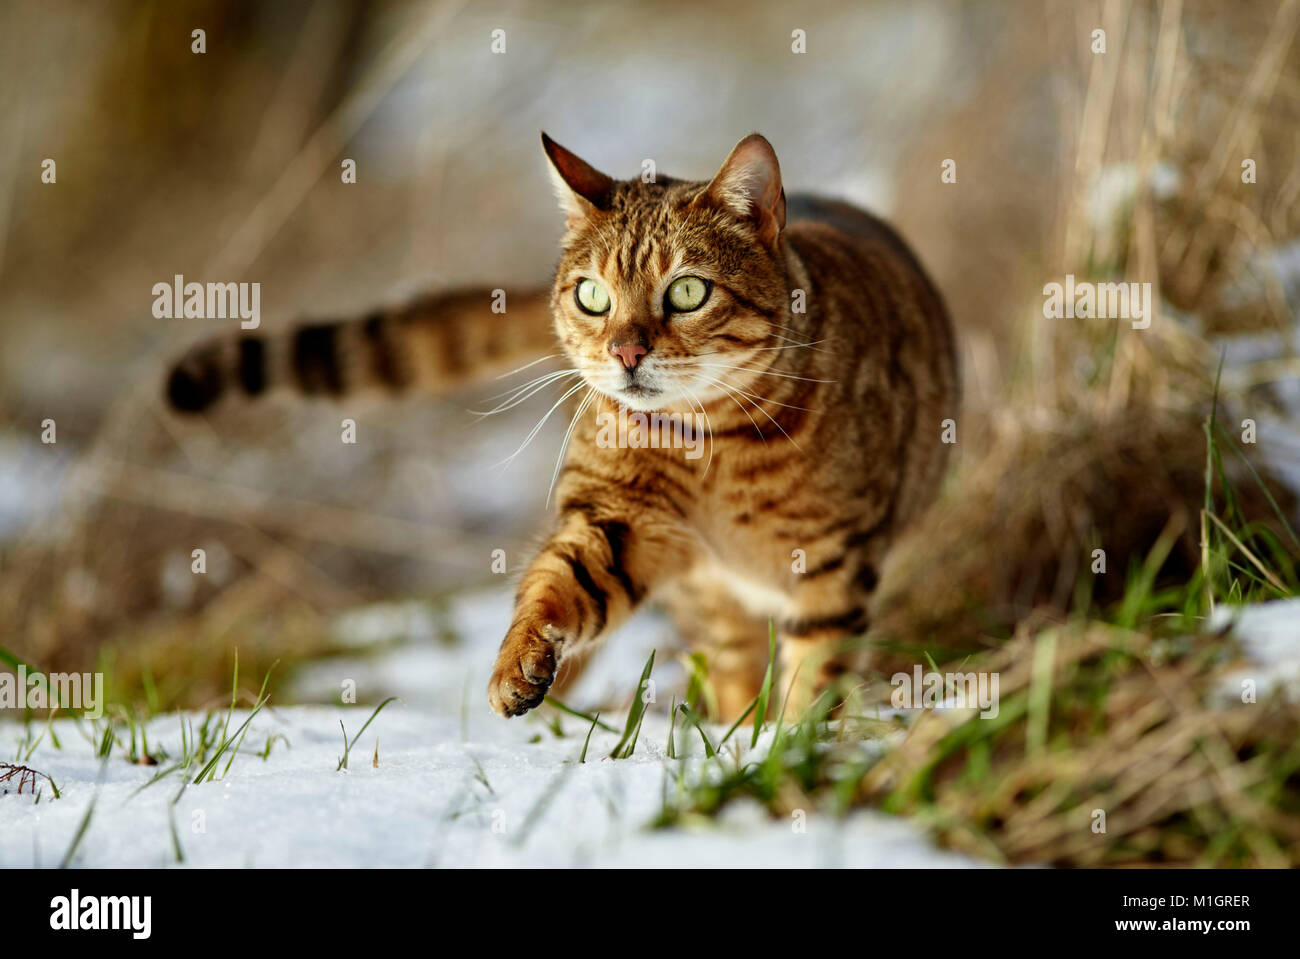 Bengal cat. Adult walking on snow. Germany - Stock Image